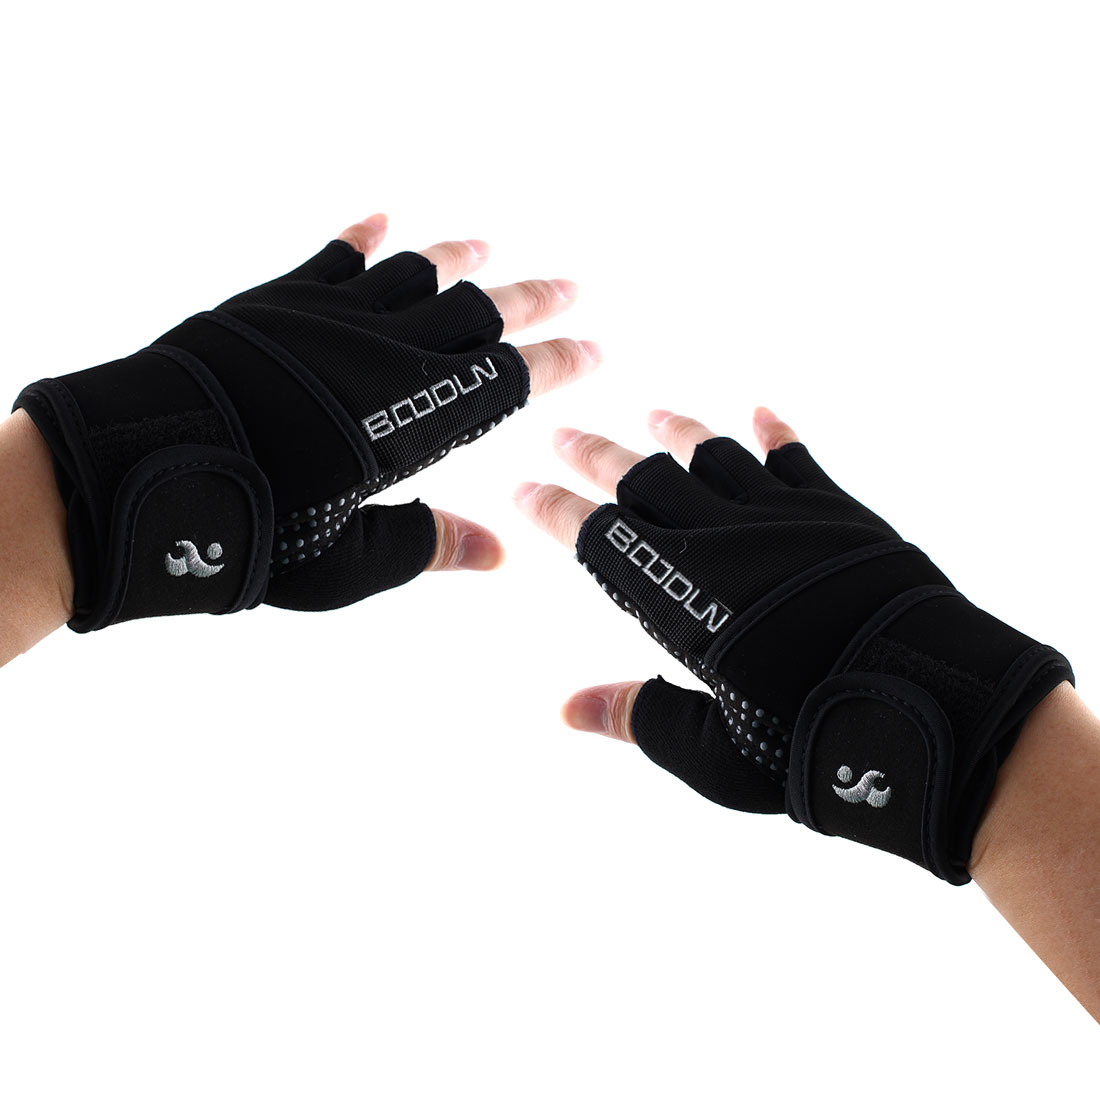 Boodun Authorized Sports Weight Lifting Training Gym Workout Fitness Embroidery Adjustable Anti Slip Half Finger Gloves Silver Tone Size S Pair